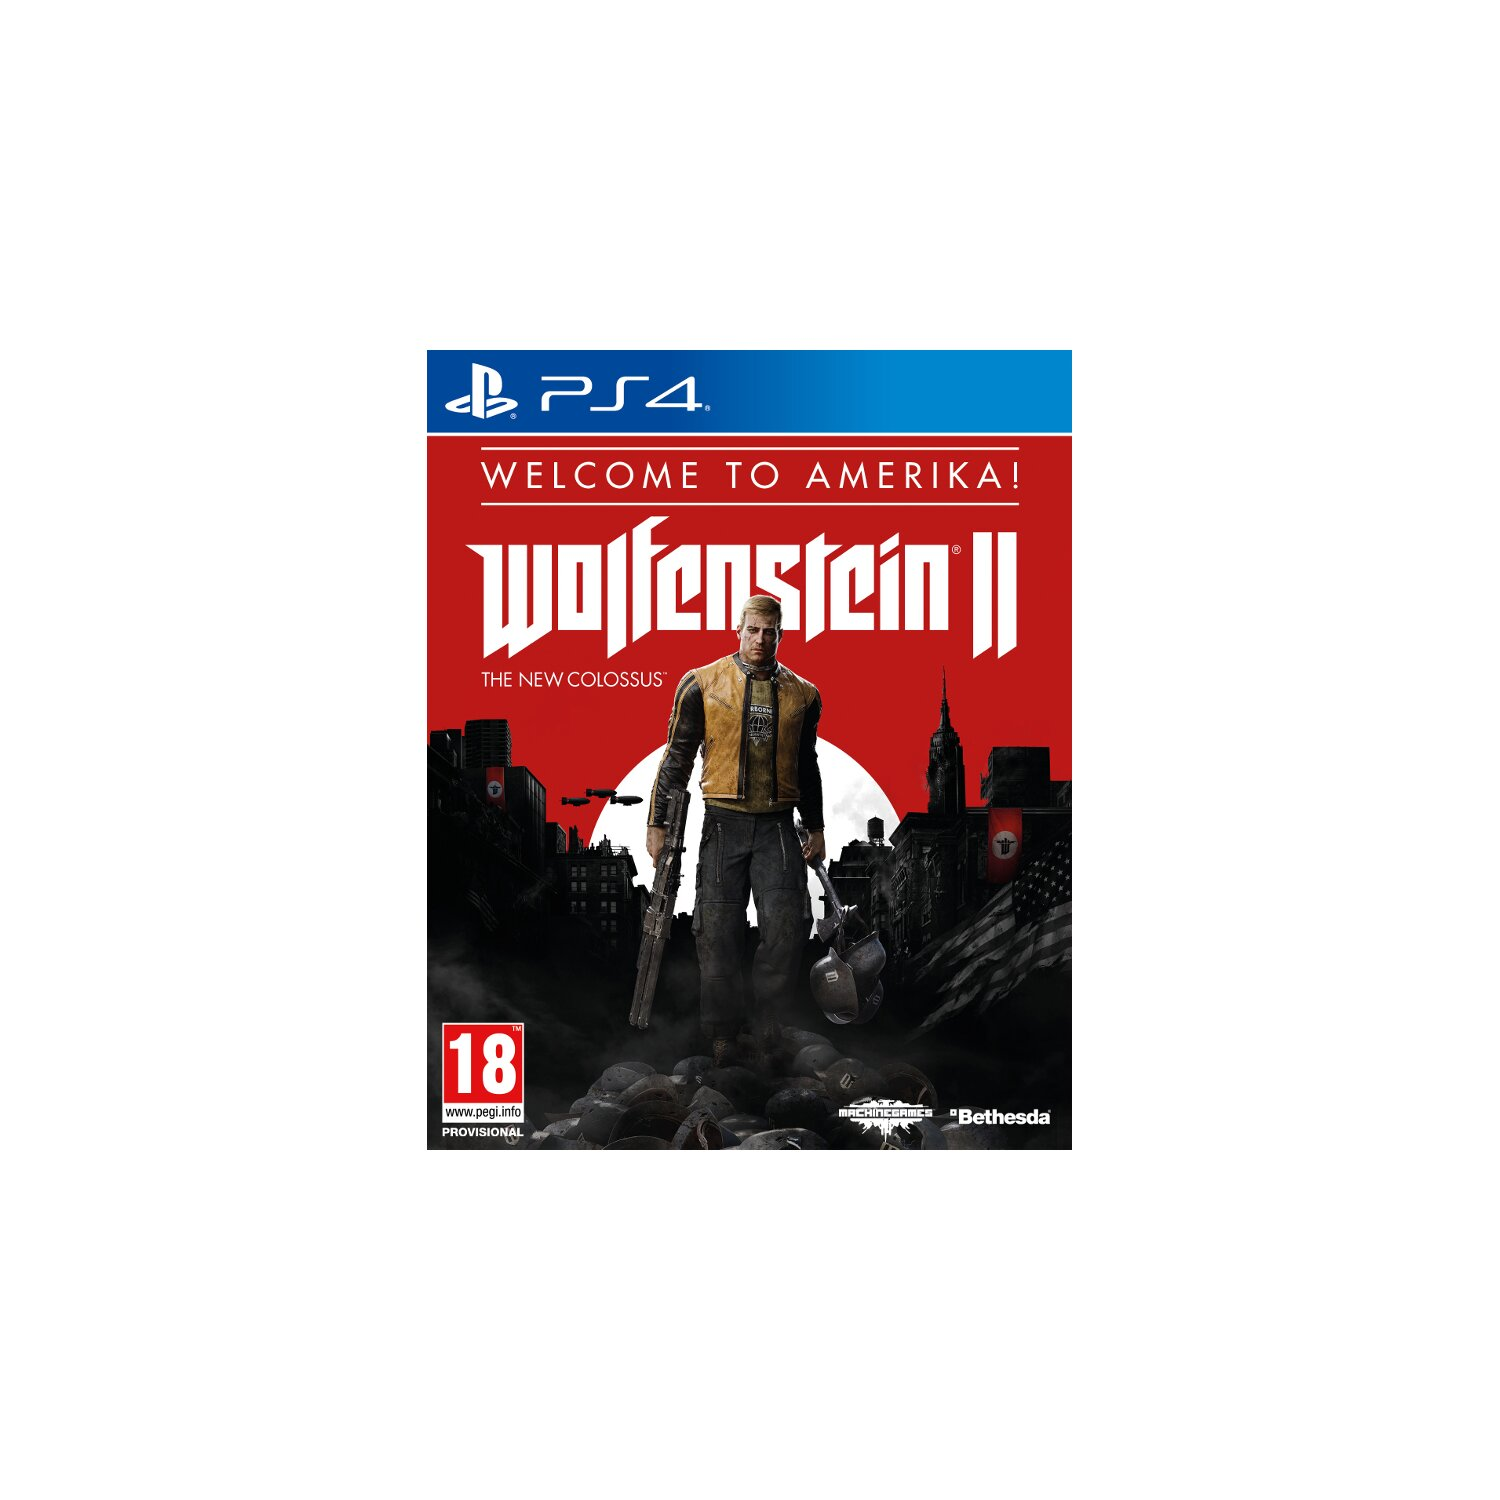 Gra PS4 Wolfenstein II The New Colossus Welcome to Amerika!